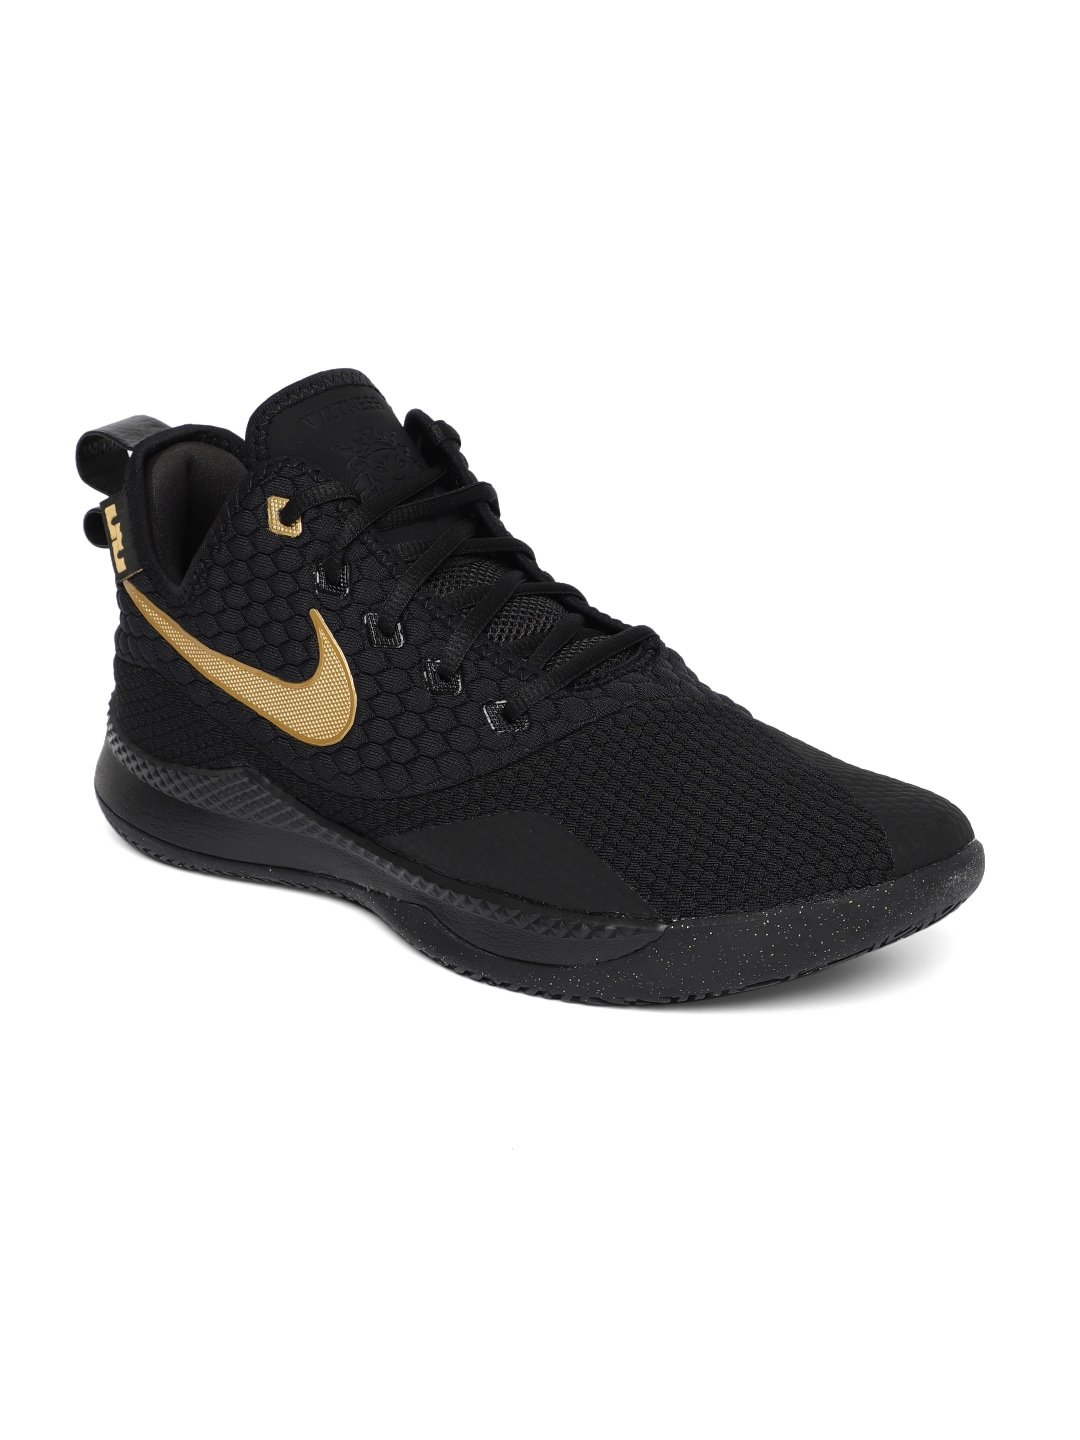 san francisco e0e66 944ba Nike Basketball Shoes   Buy Nike Basketball Shoes Online in India at Best  Price